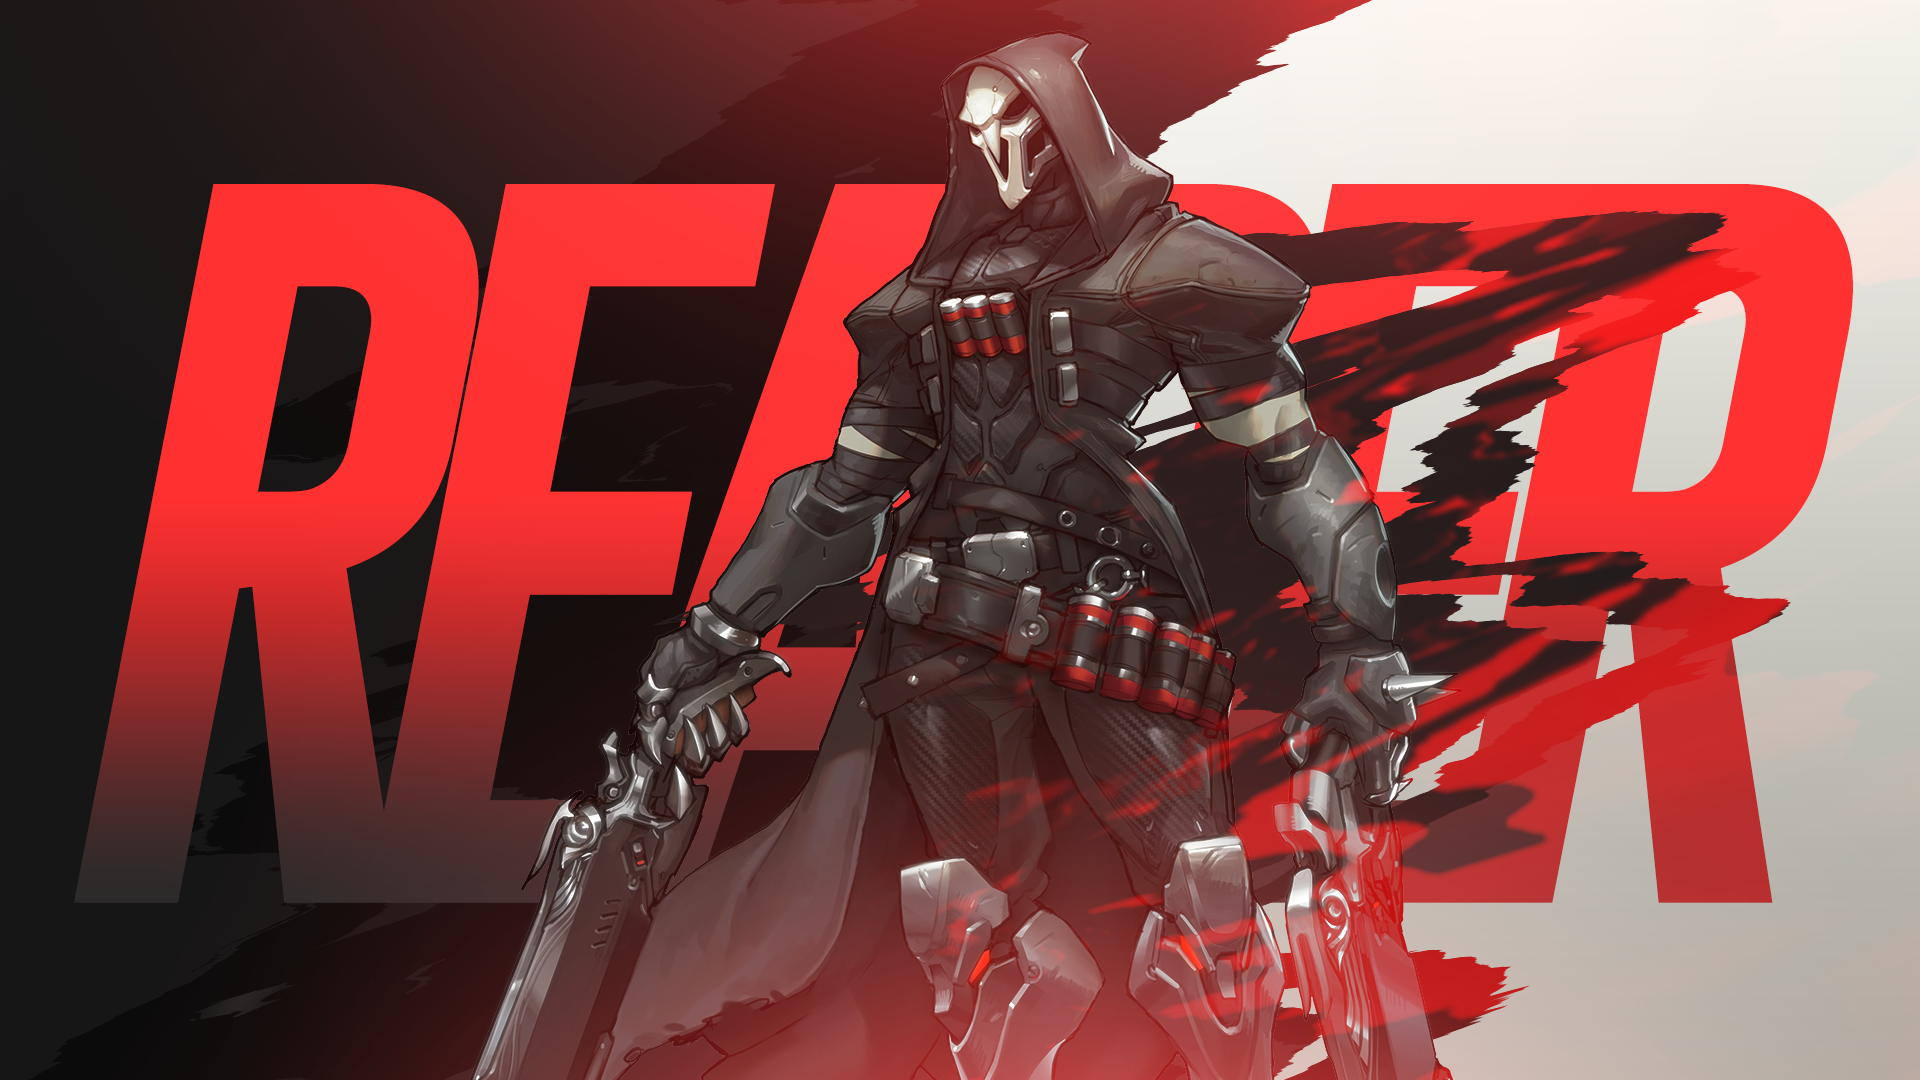 Overwatch - Reaper Wallpaper by MikoyaNx deviantart com on